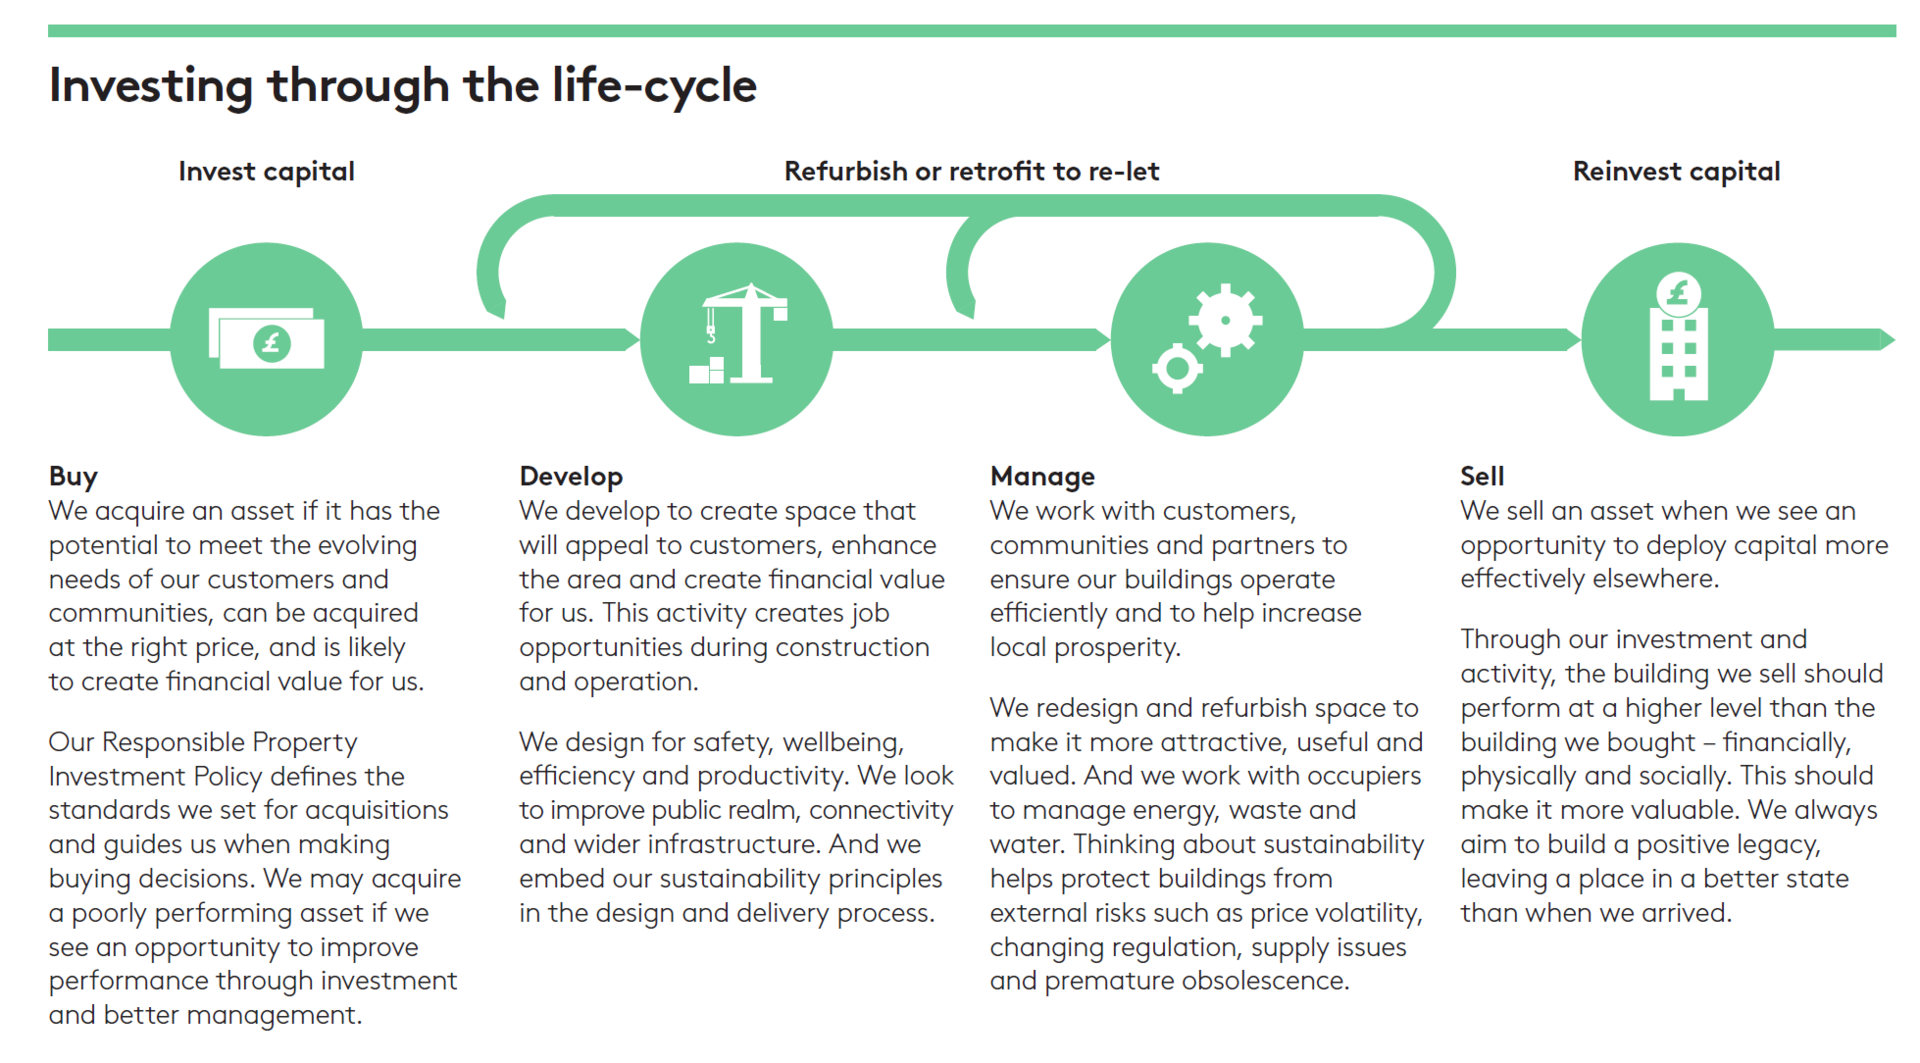 Investing through the life-cycle